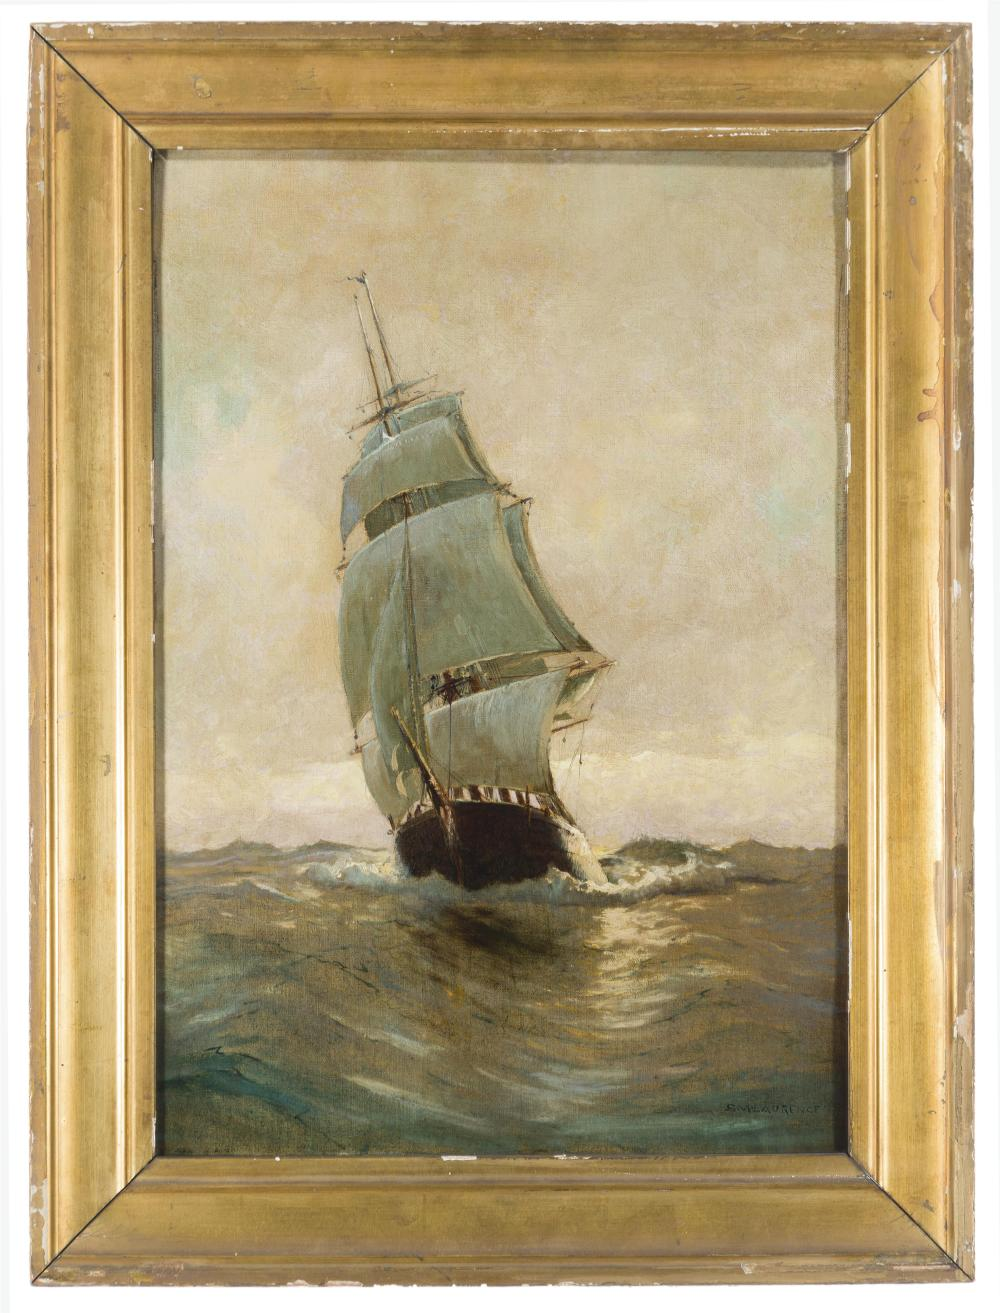 Sydney M. Laurence, (1865-1940 Anchorage, AK), Clipper ship on rough seas, Oil on canvas, 20